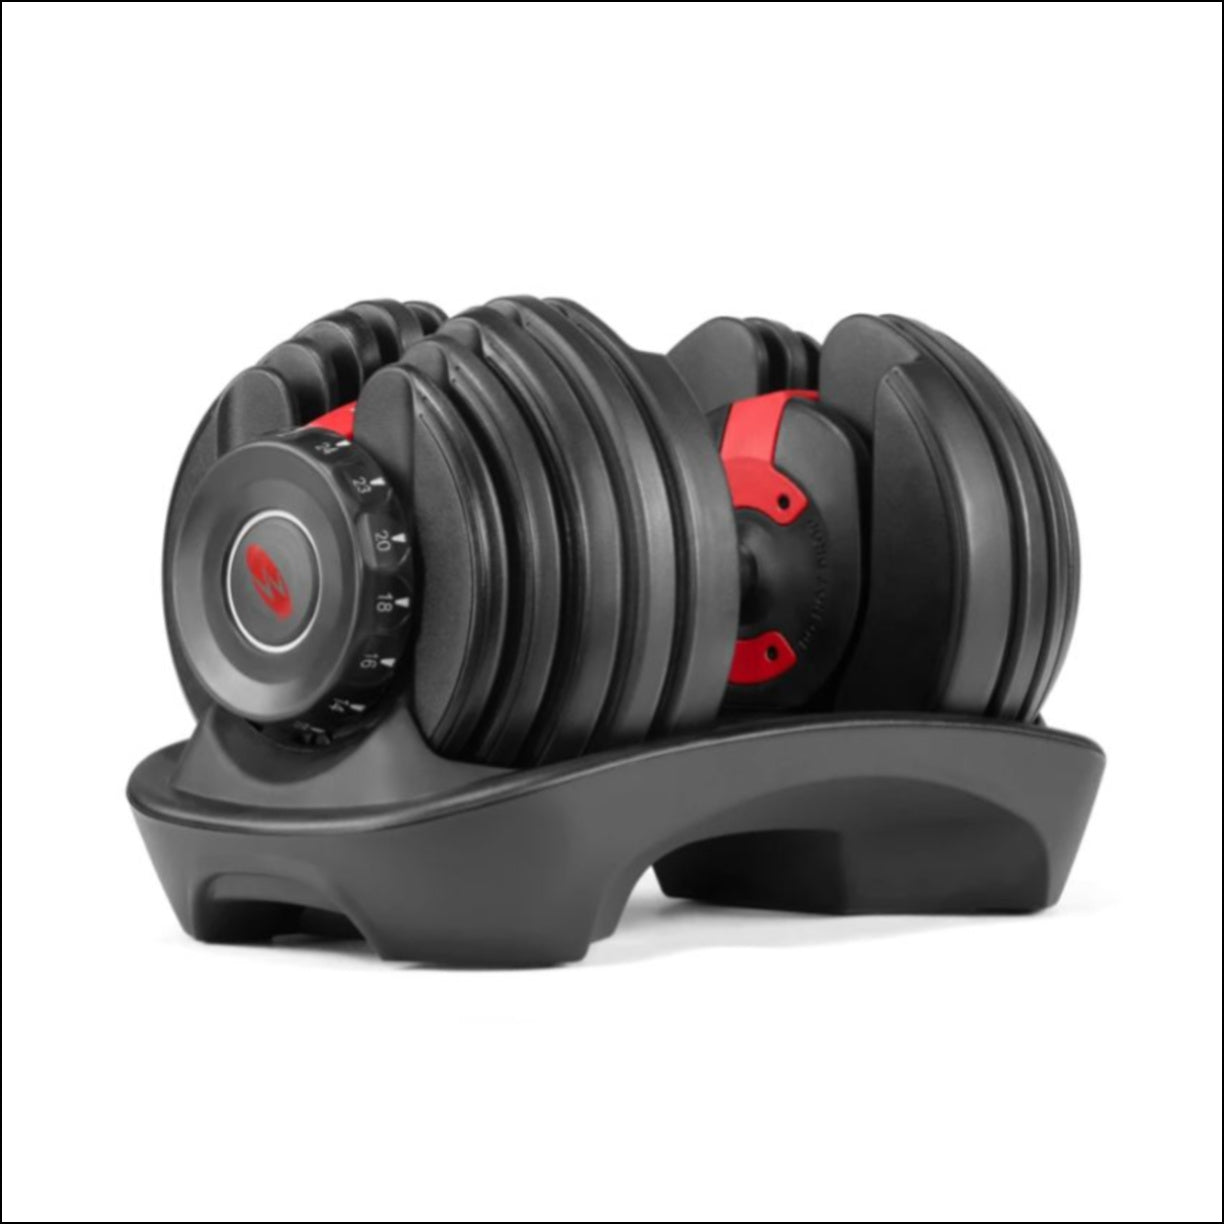 Home gym equipment Australia  BOWFLEX 552i Adjustable Dumbbell These adjustable dumbbells have weights that adjust